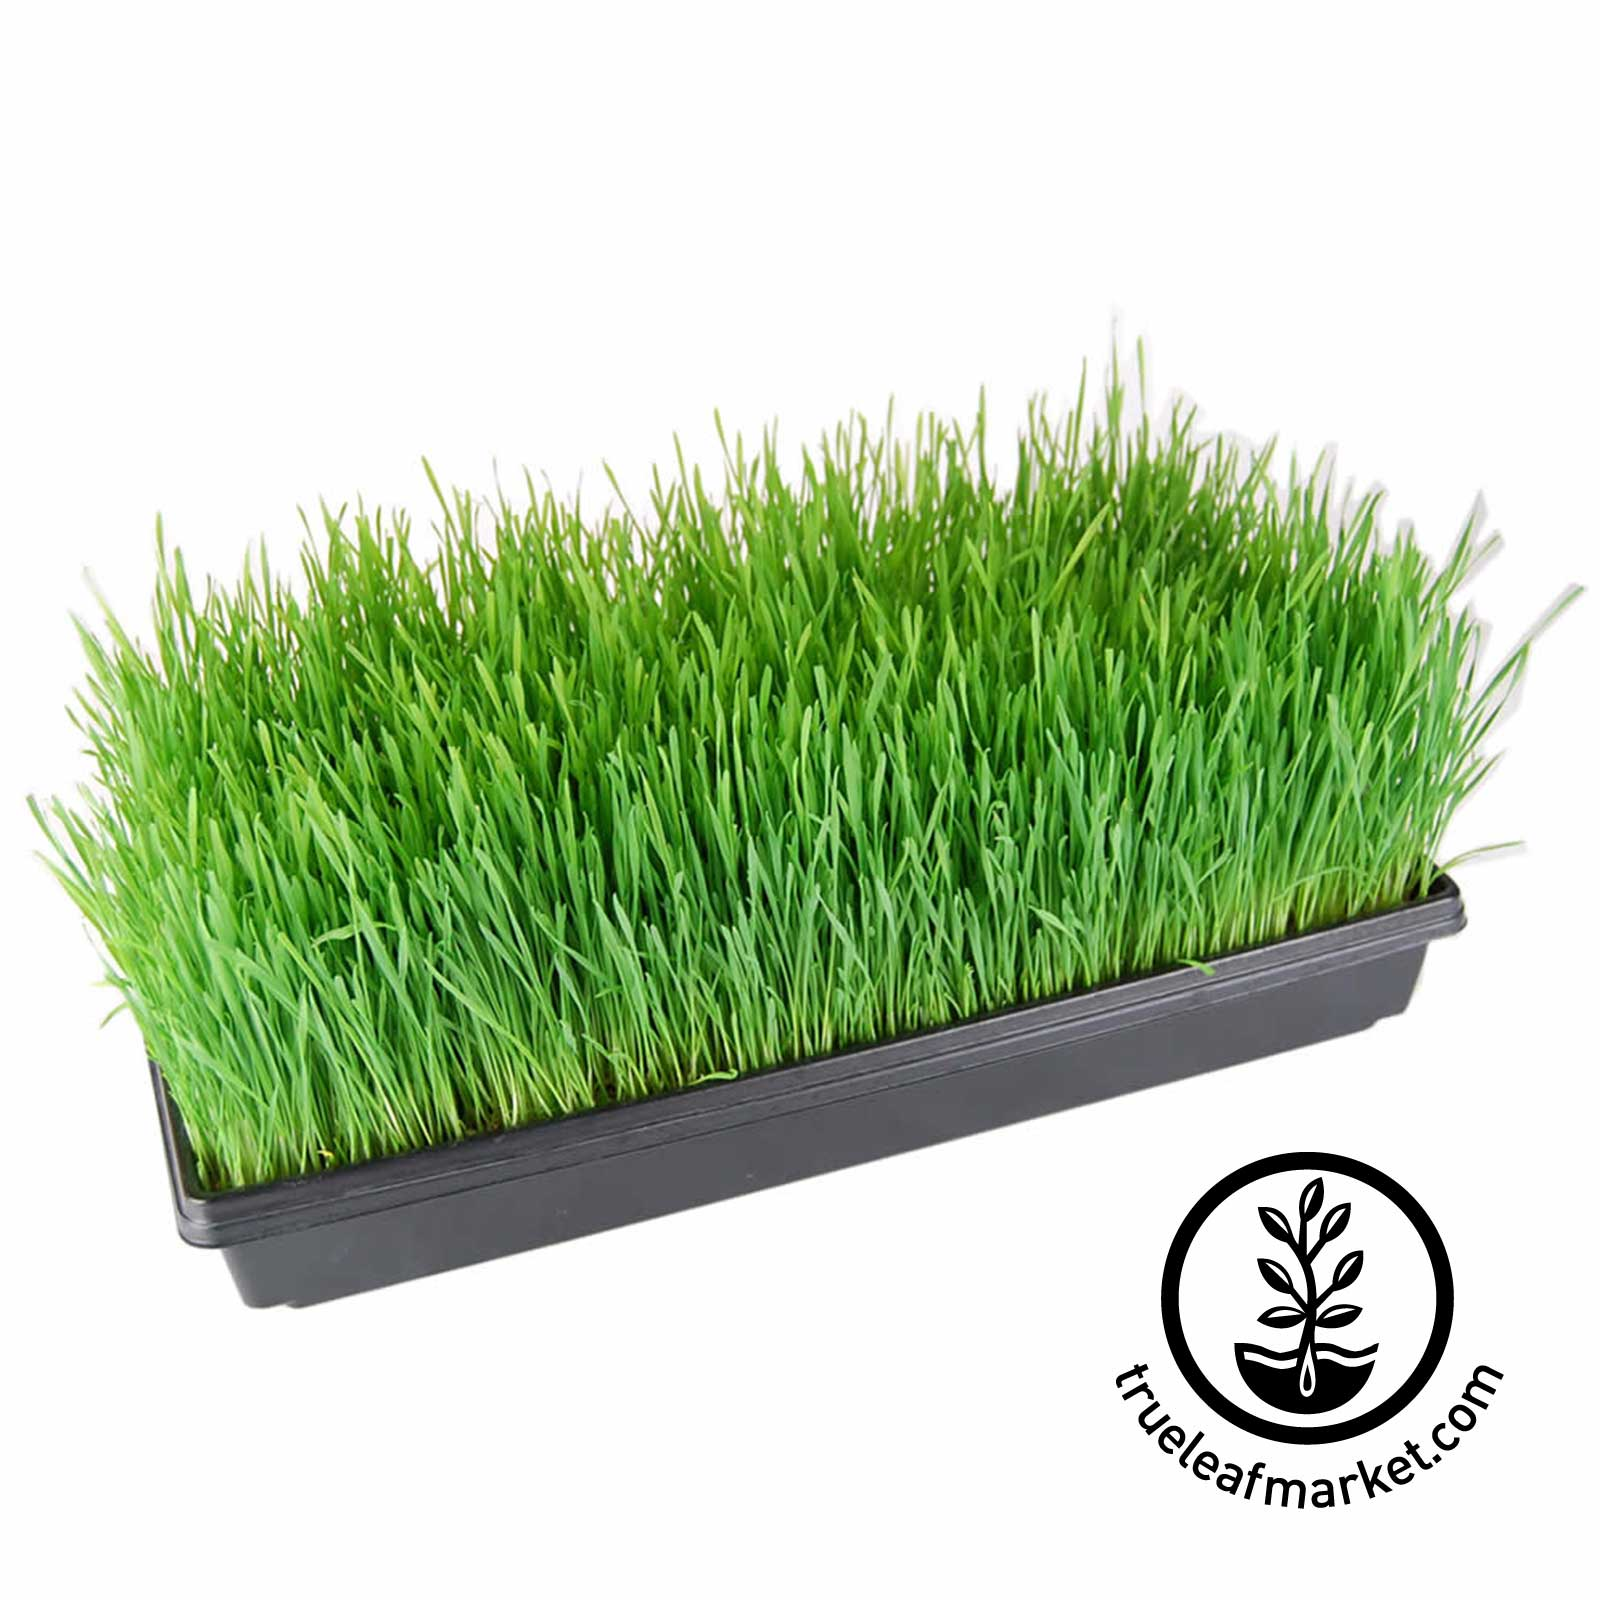 Large Flat of Grown Wheatgrass